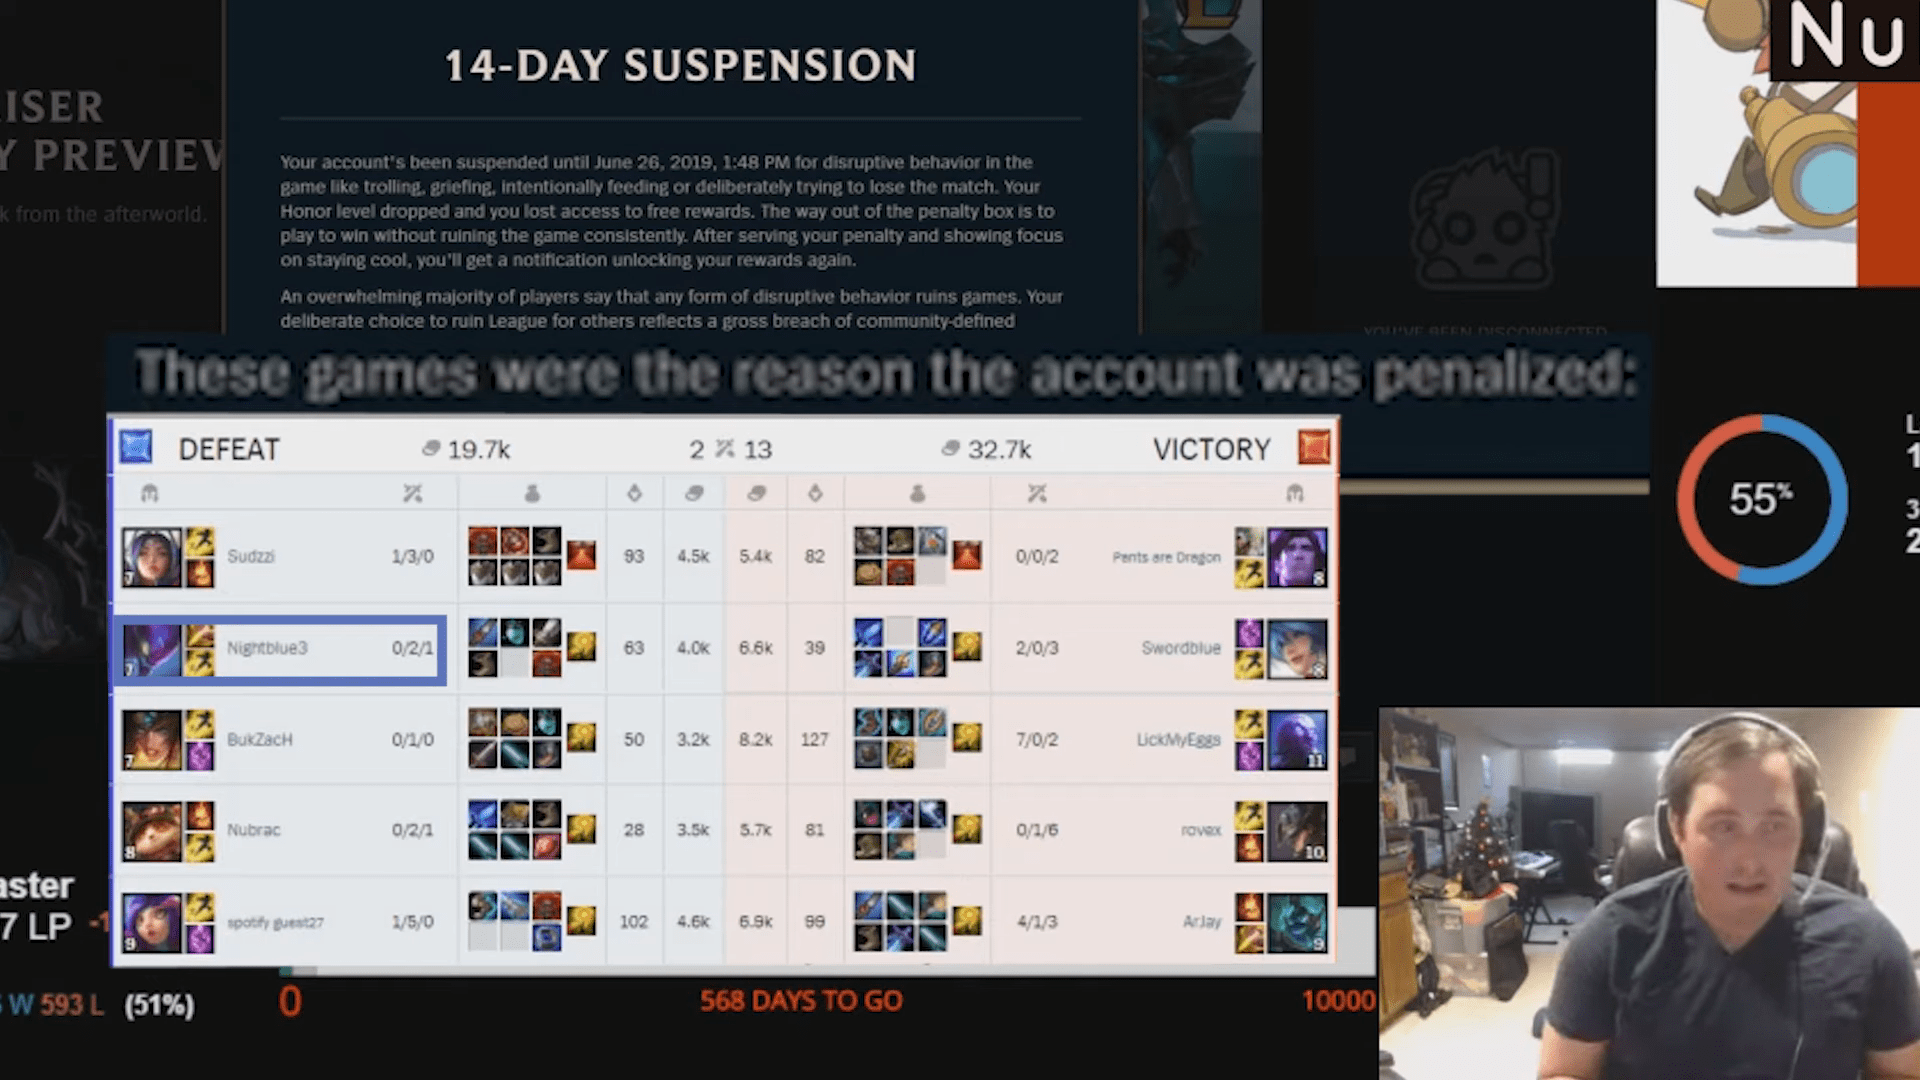 League Of Legends Streamer Nightblue3 Gets 14-Day Suspension Following Troll Controversy